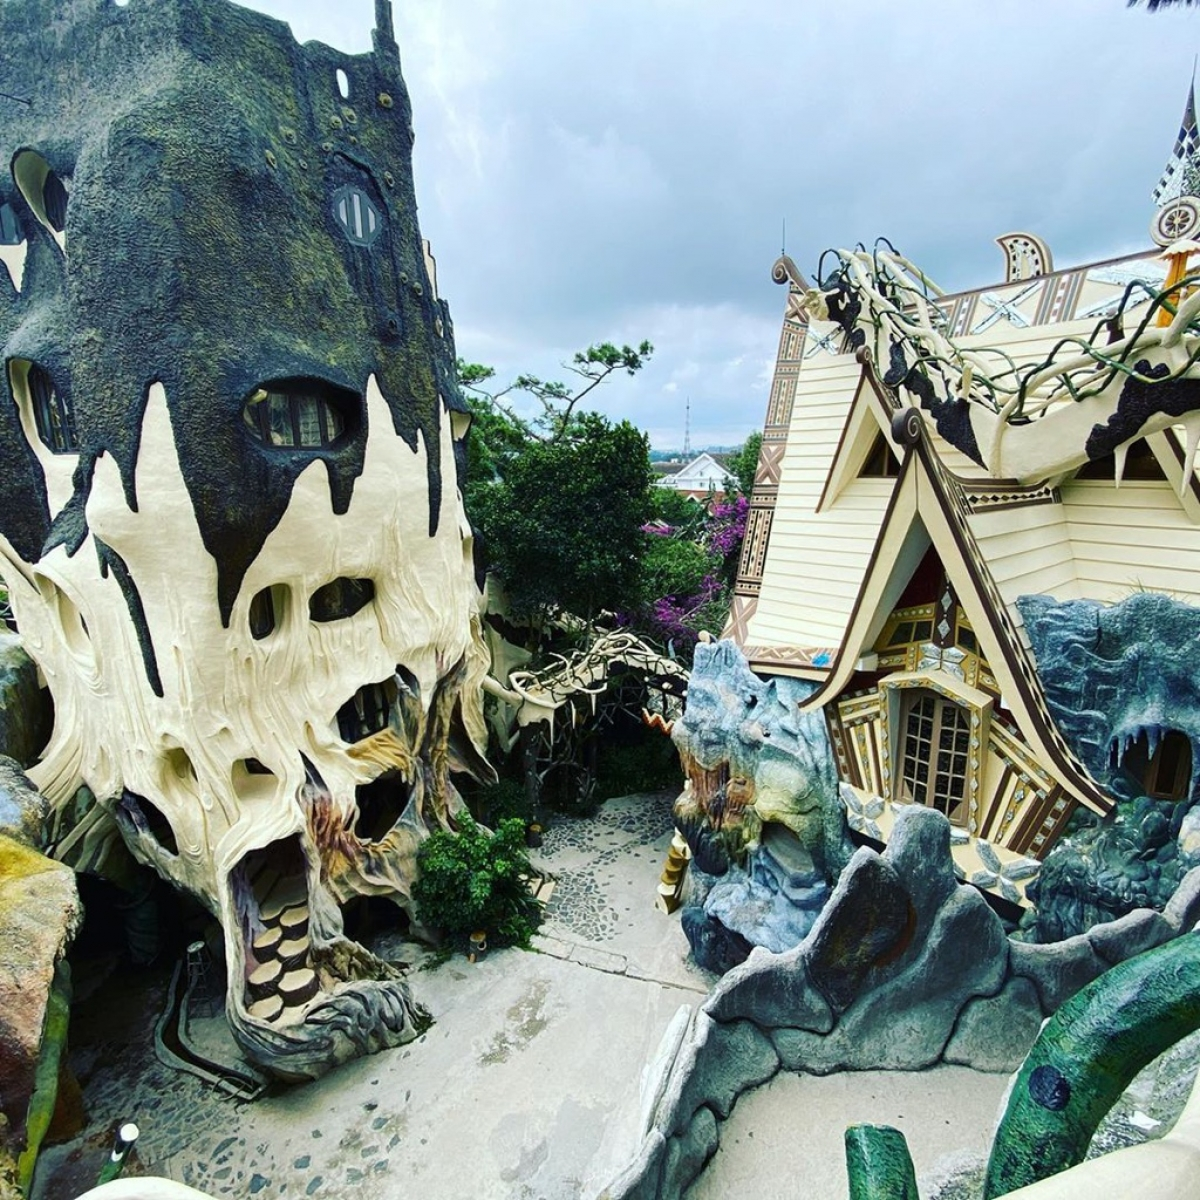 Crazy House was originally built in 1990 and spans a total area of 1,900 square metres. (Photo: Hoalienhoa)